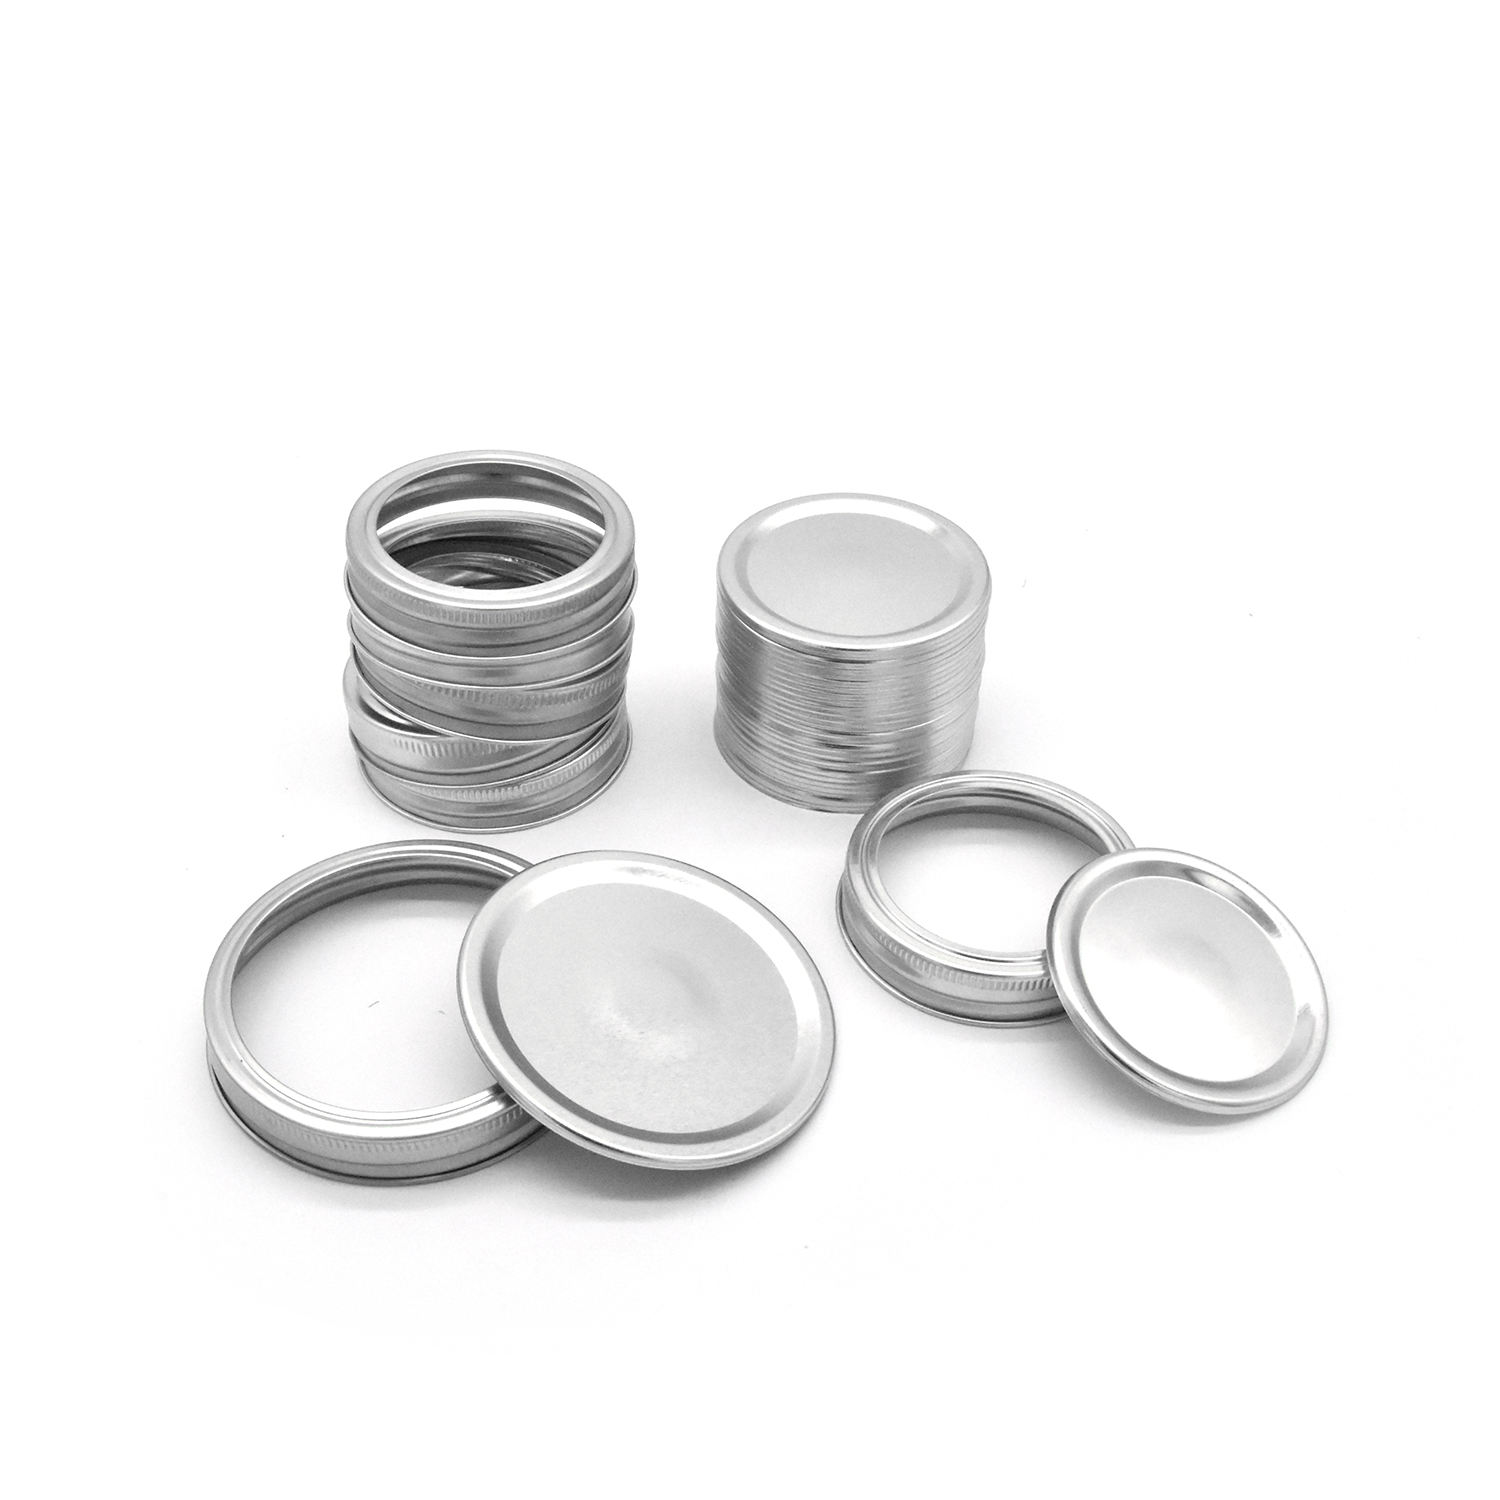 70mm 86mm Tinplate Regular and Wide Mouth Mason Jar Canning Lids with Rings